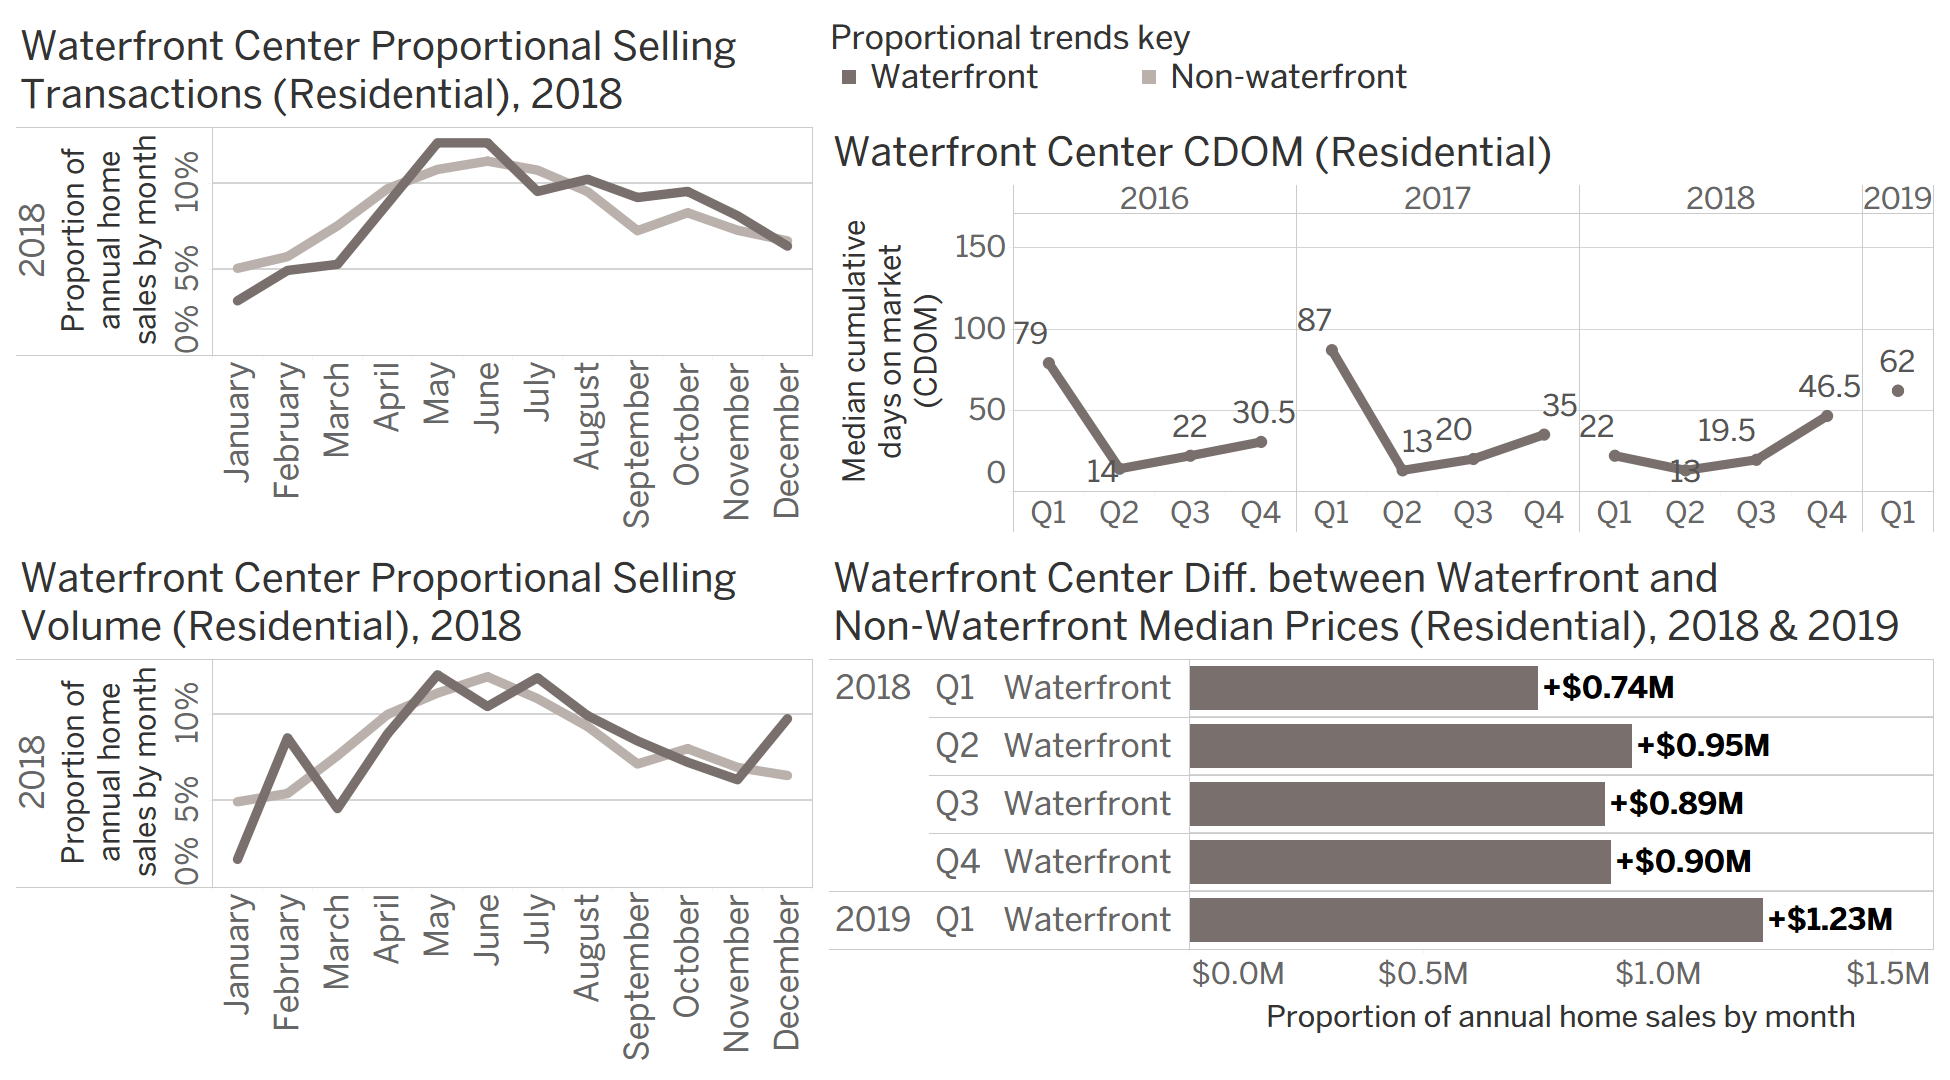 Chart Group A: seasonal waterfront transaction data for Waterfront Center.